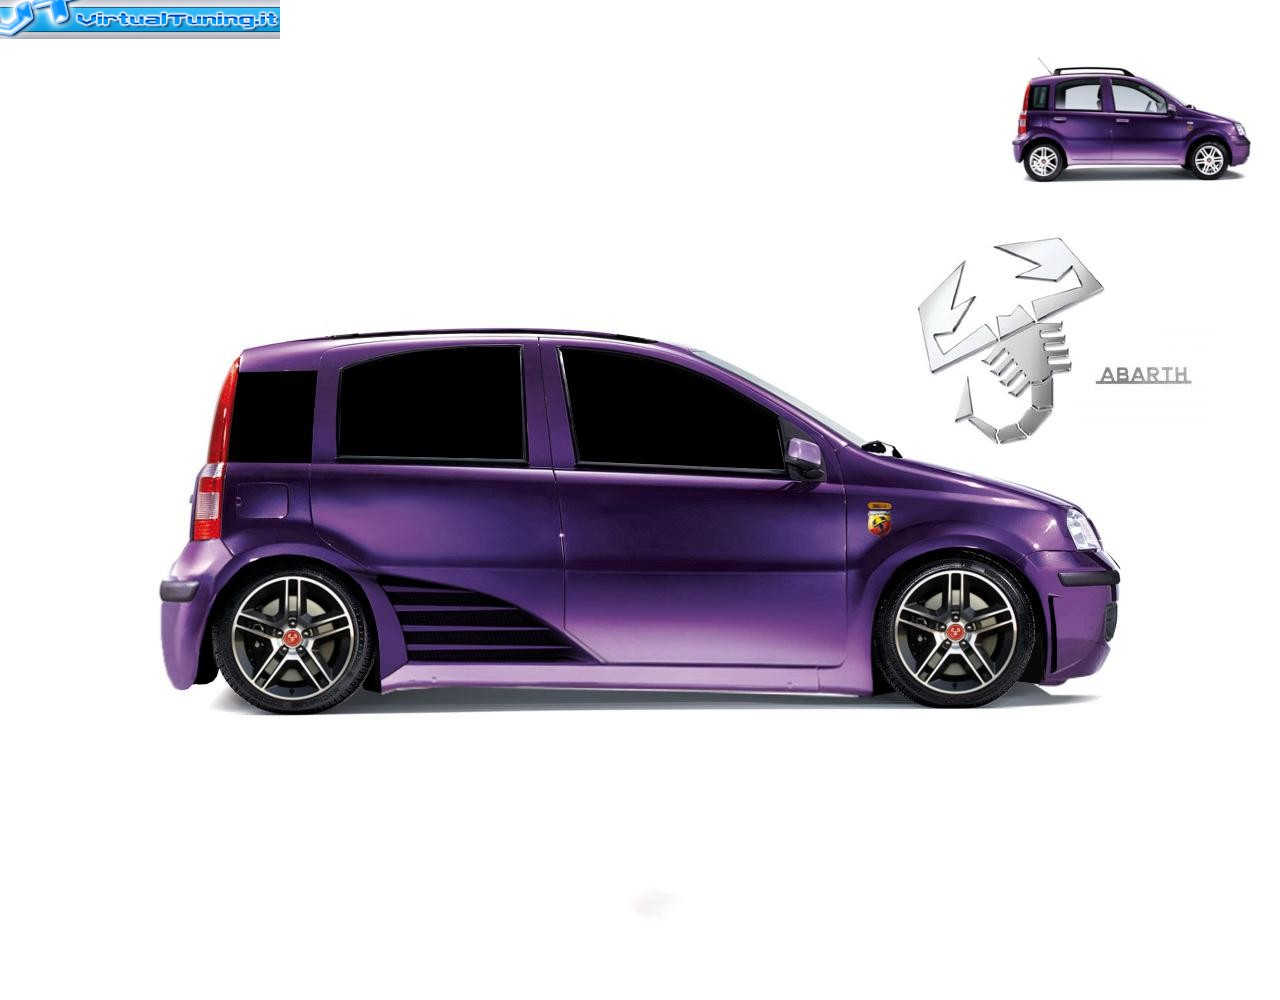 fiat panda abarth by saichisono virtualtuning it. Black Bedroom Furniture Sets. Home Design Ideas